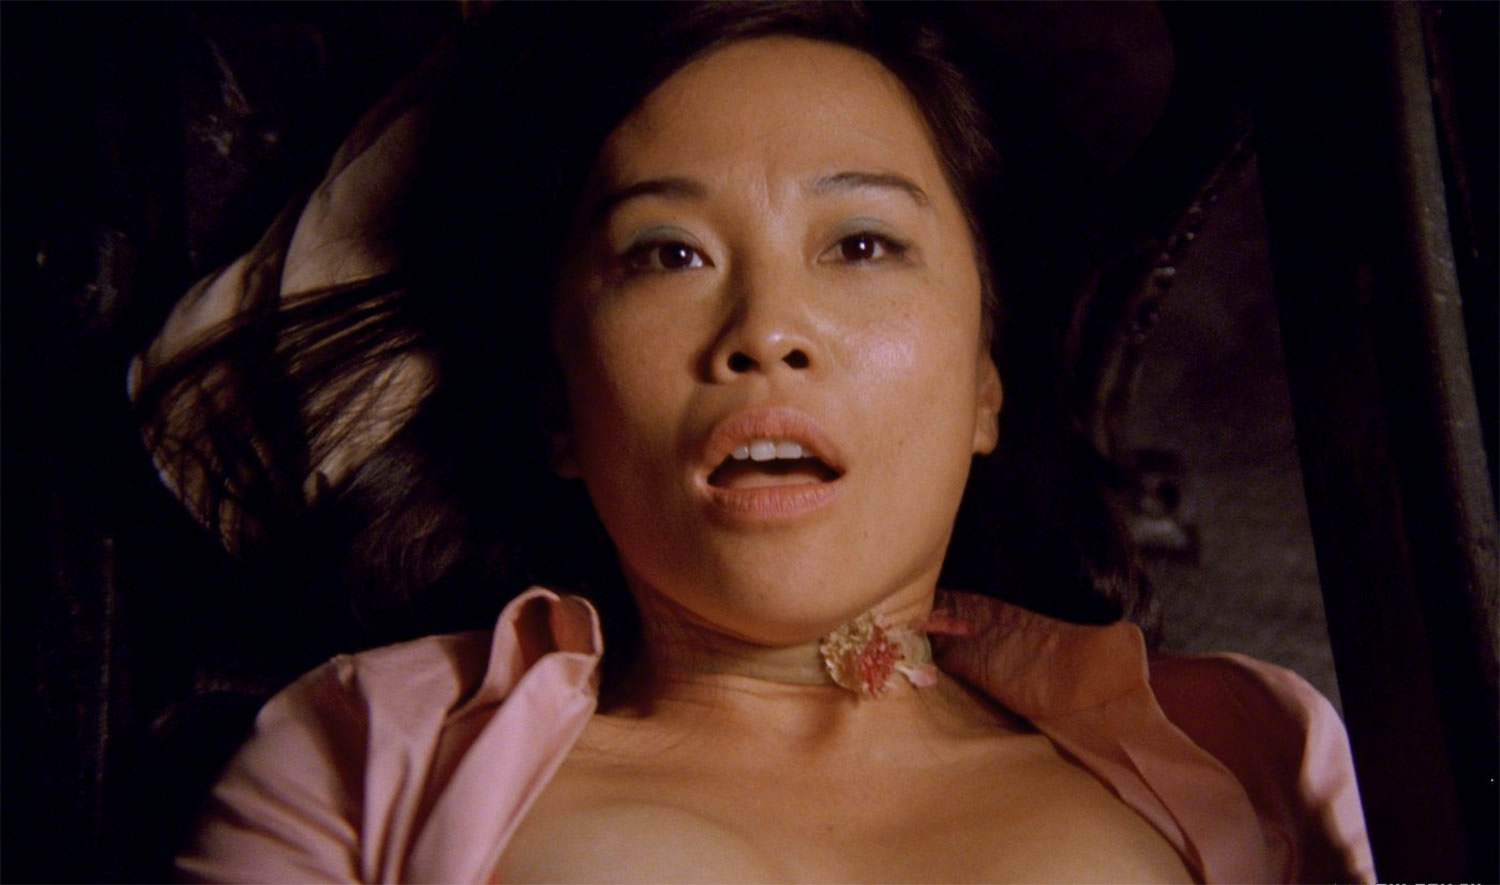 Erotic Art House Films , Shortbus - Sook-Yin Lee